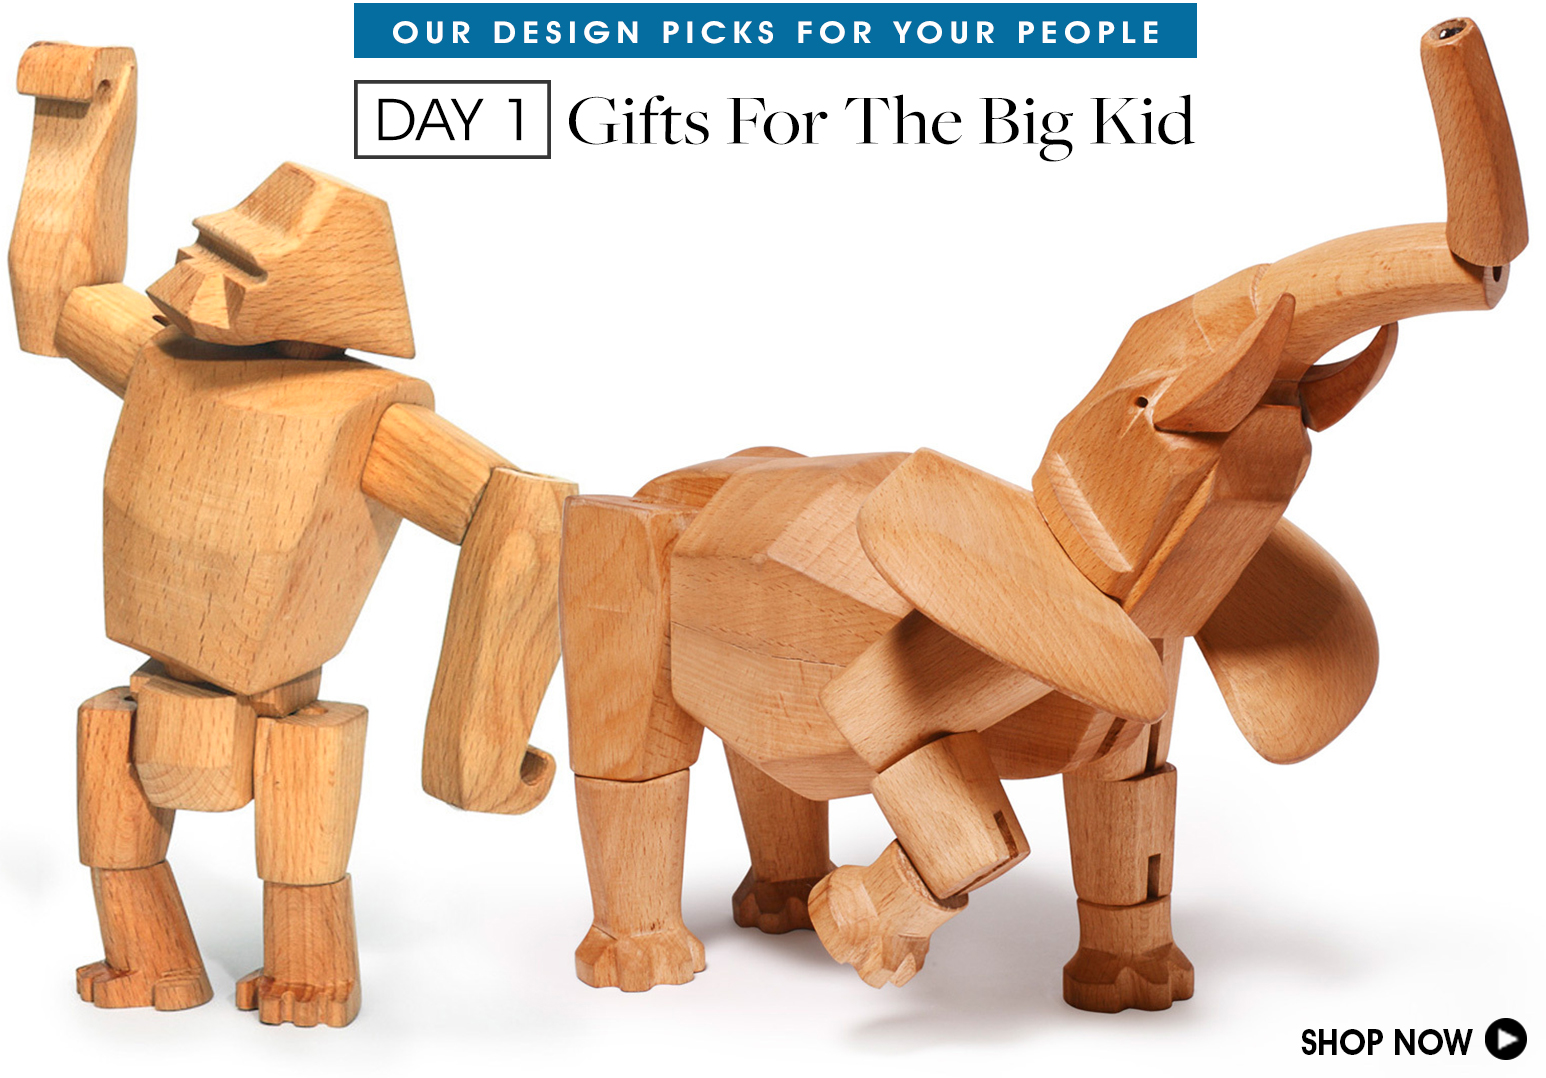 - 12 Days of Gifting - Day 1 Gifts for Big Kids